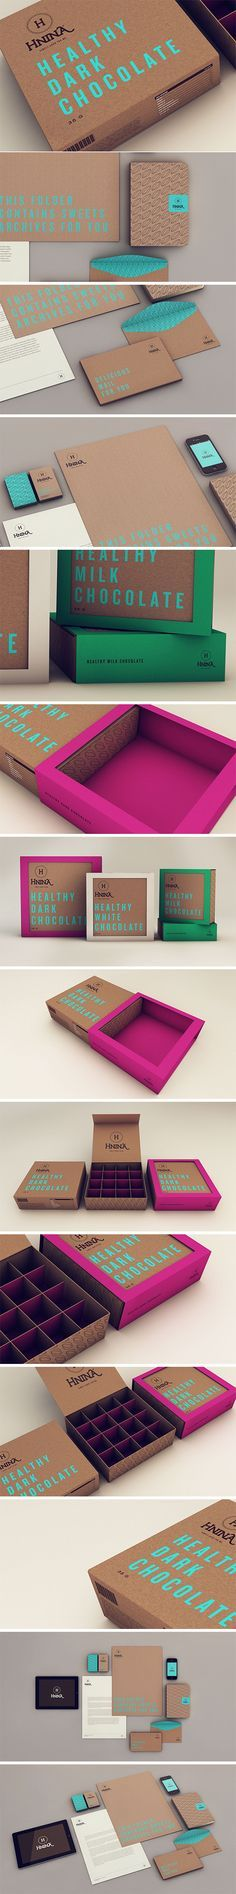 another simple and clever chocolate packaging